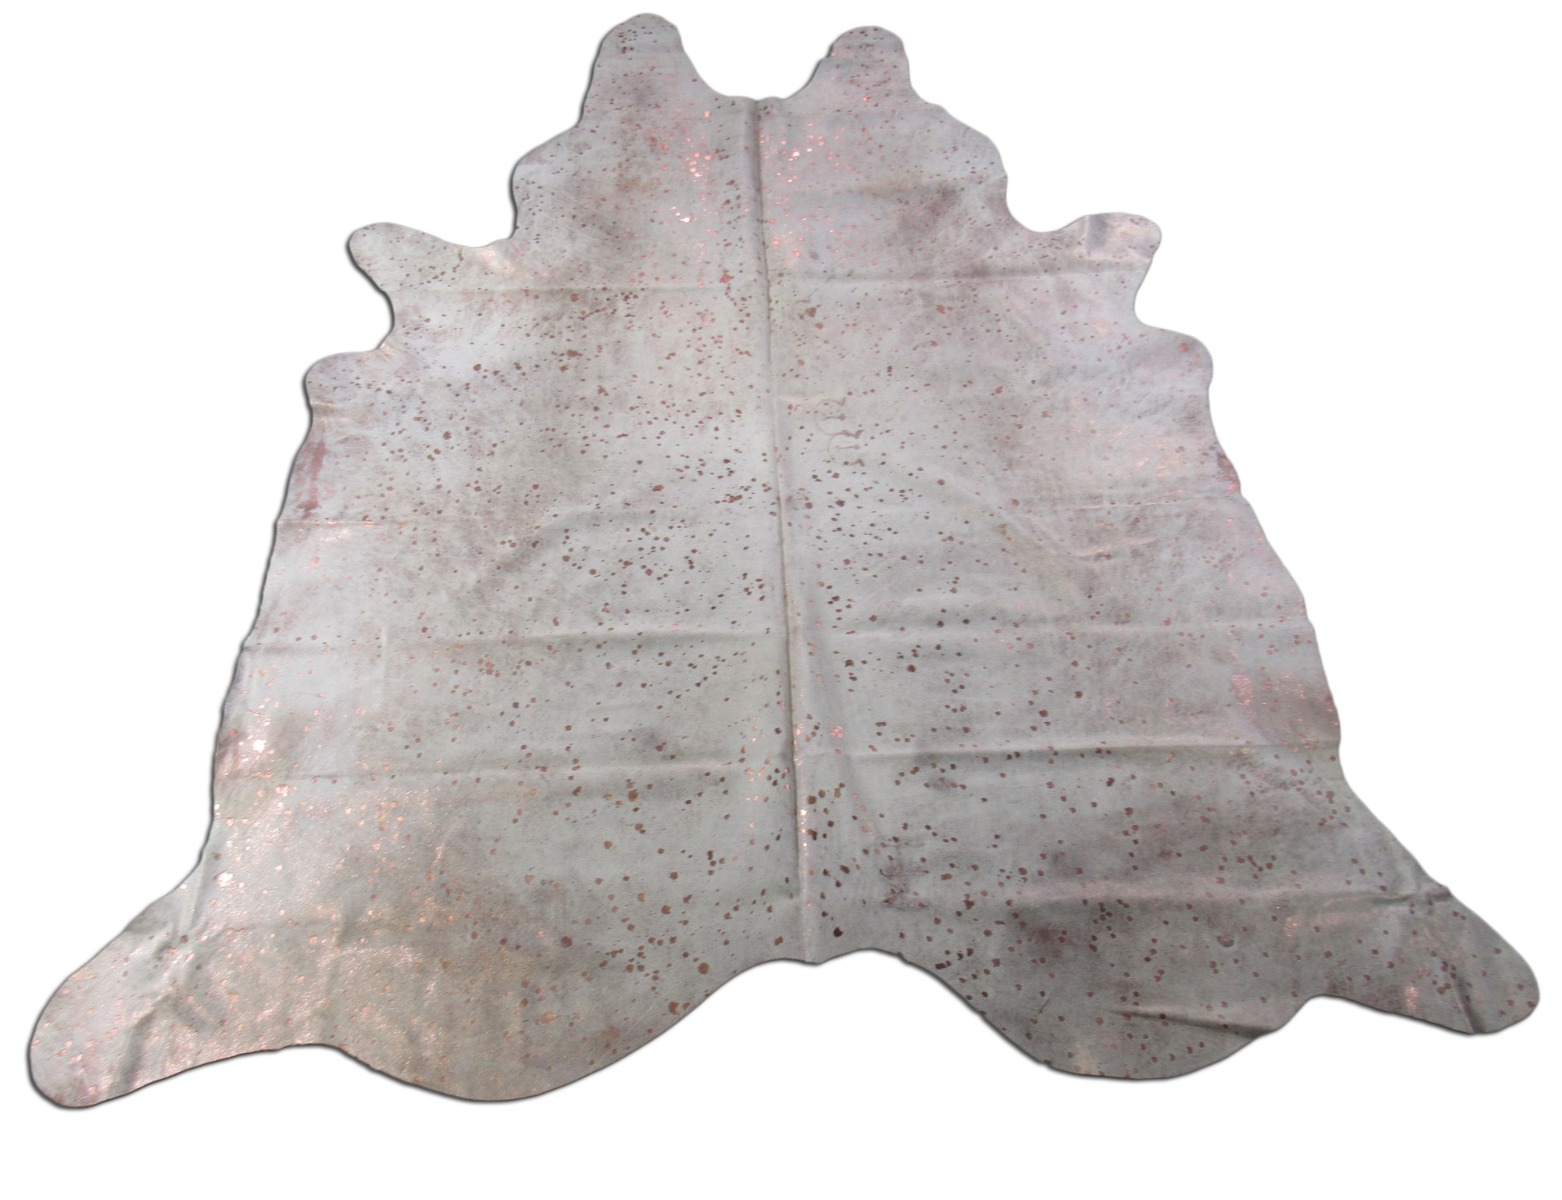 A-1445 Rose Gold Metallic Cowhide Rug Size: 7 1/4' X 7'